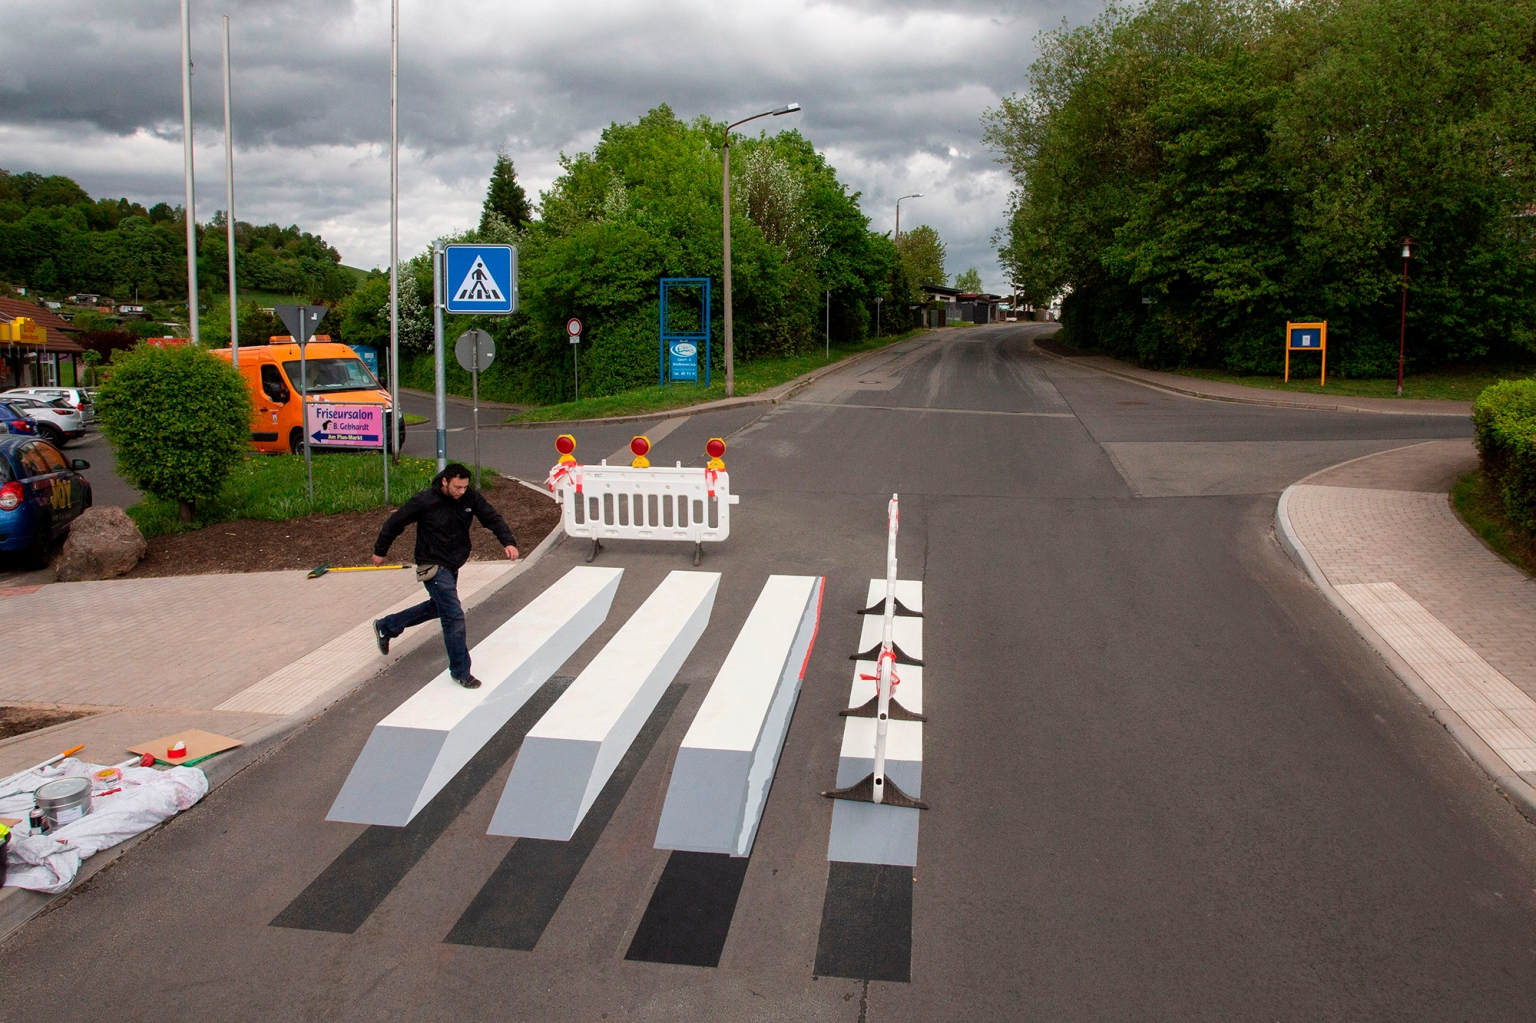 German graffiti artist, Alexander Frank, crosses a 3D painted pedestrian crossing in the town of Schmalkalden, central Germany, on April 30. The artwork is designed to increase road safety. CHRISTOPH SOEDER/AFP/Getty Images